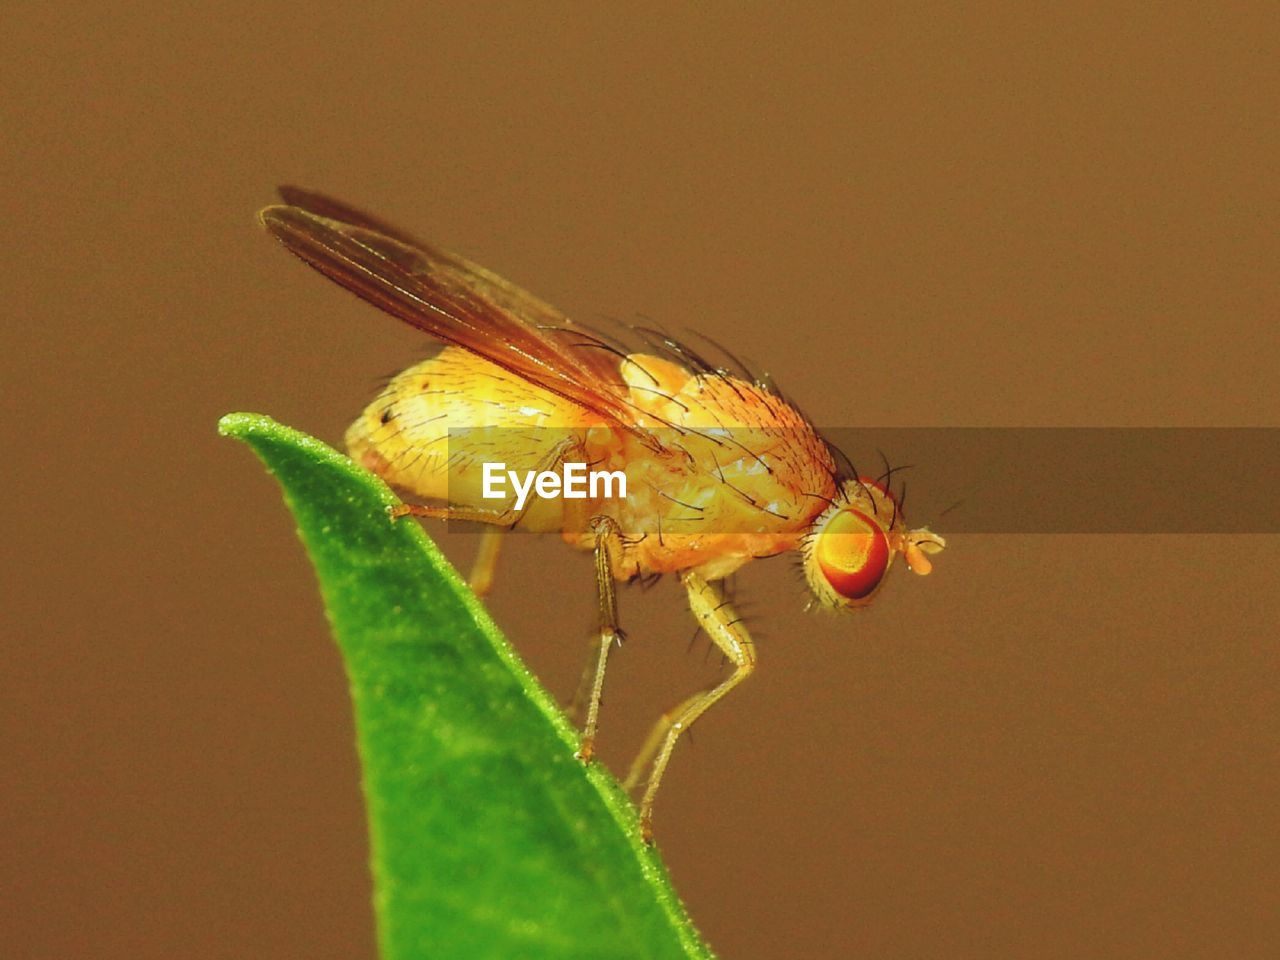 invertebrate, insect, animal themes, one animal, animal, animals in the wild, animal wildlife, close-up, leaf, plant part, nature, animal wing, no people, green color, fly, animal body part, day, focus on foreground, plant, outdoors, animal eye